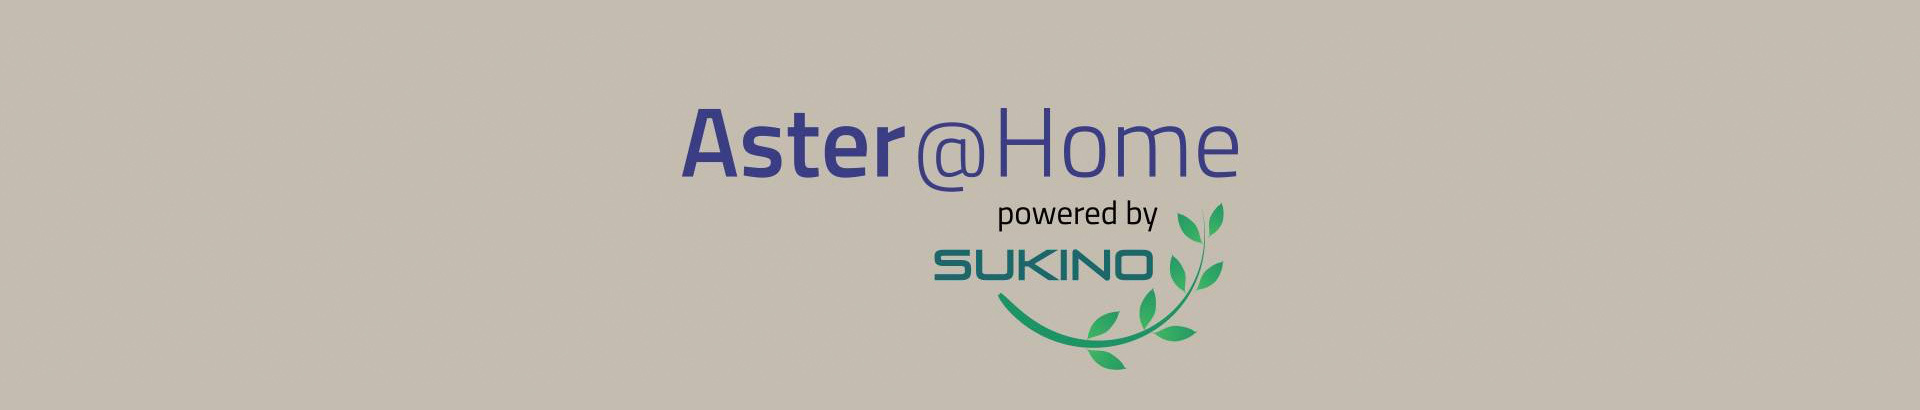 1920x410-home-aster